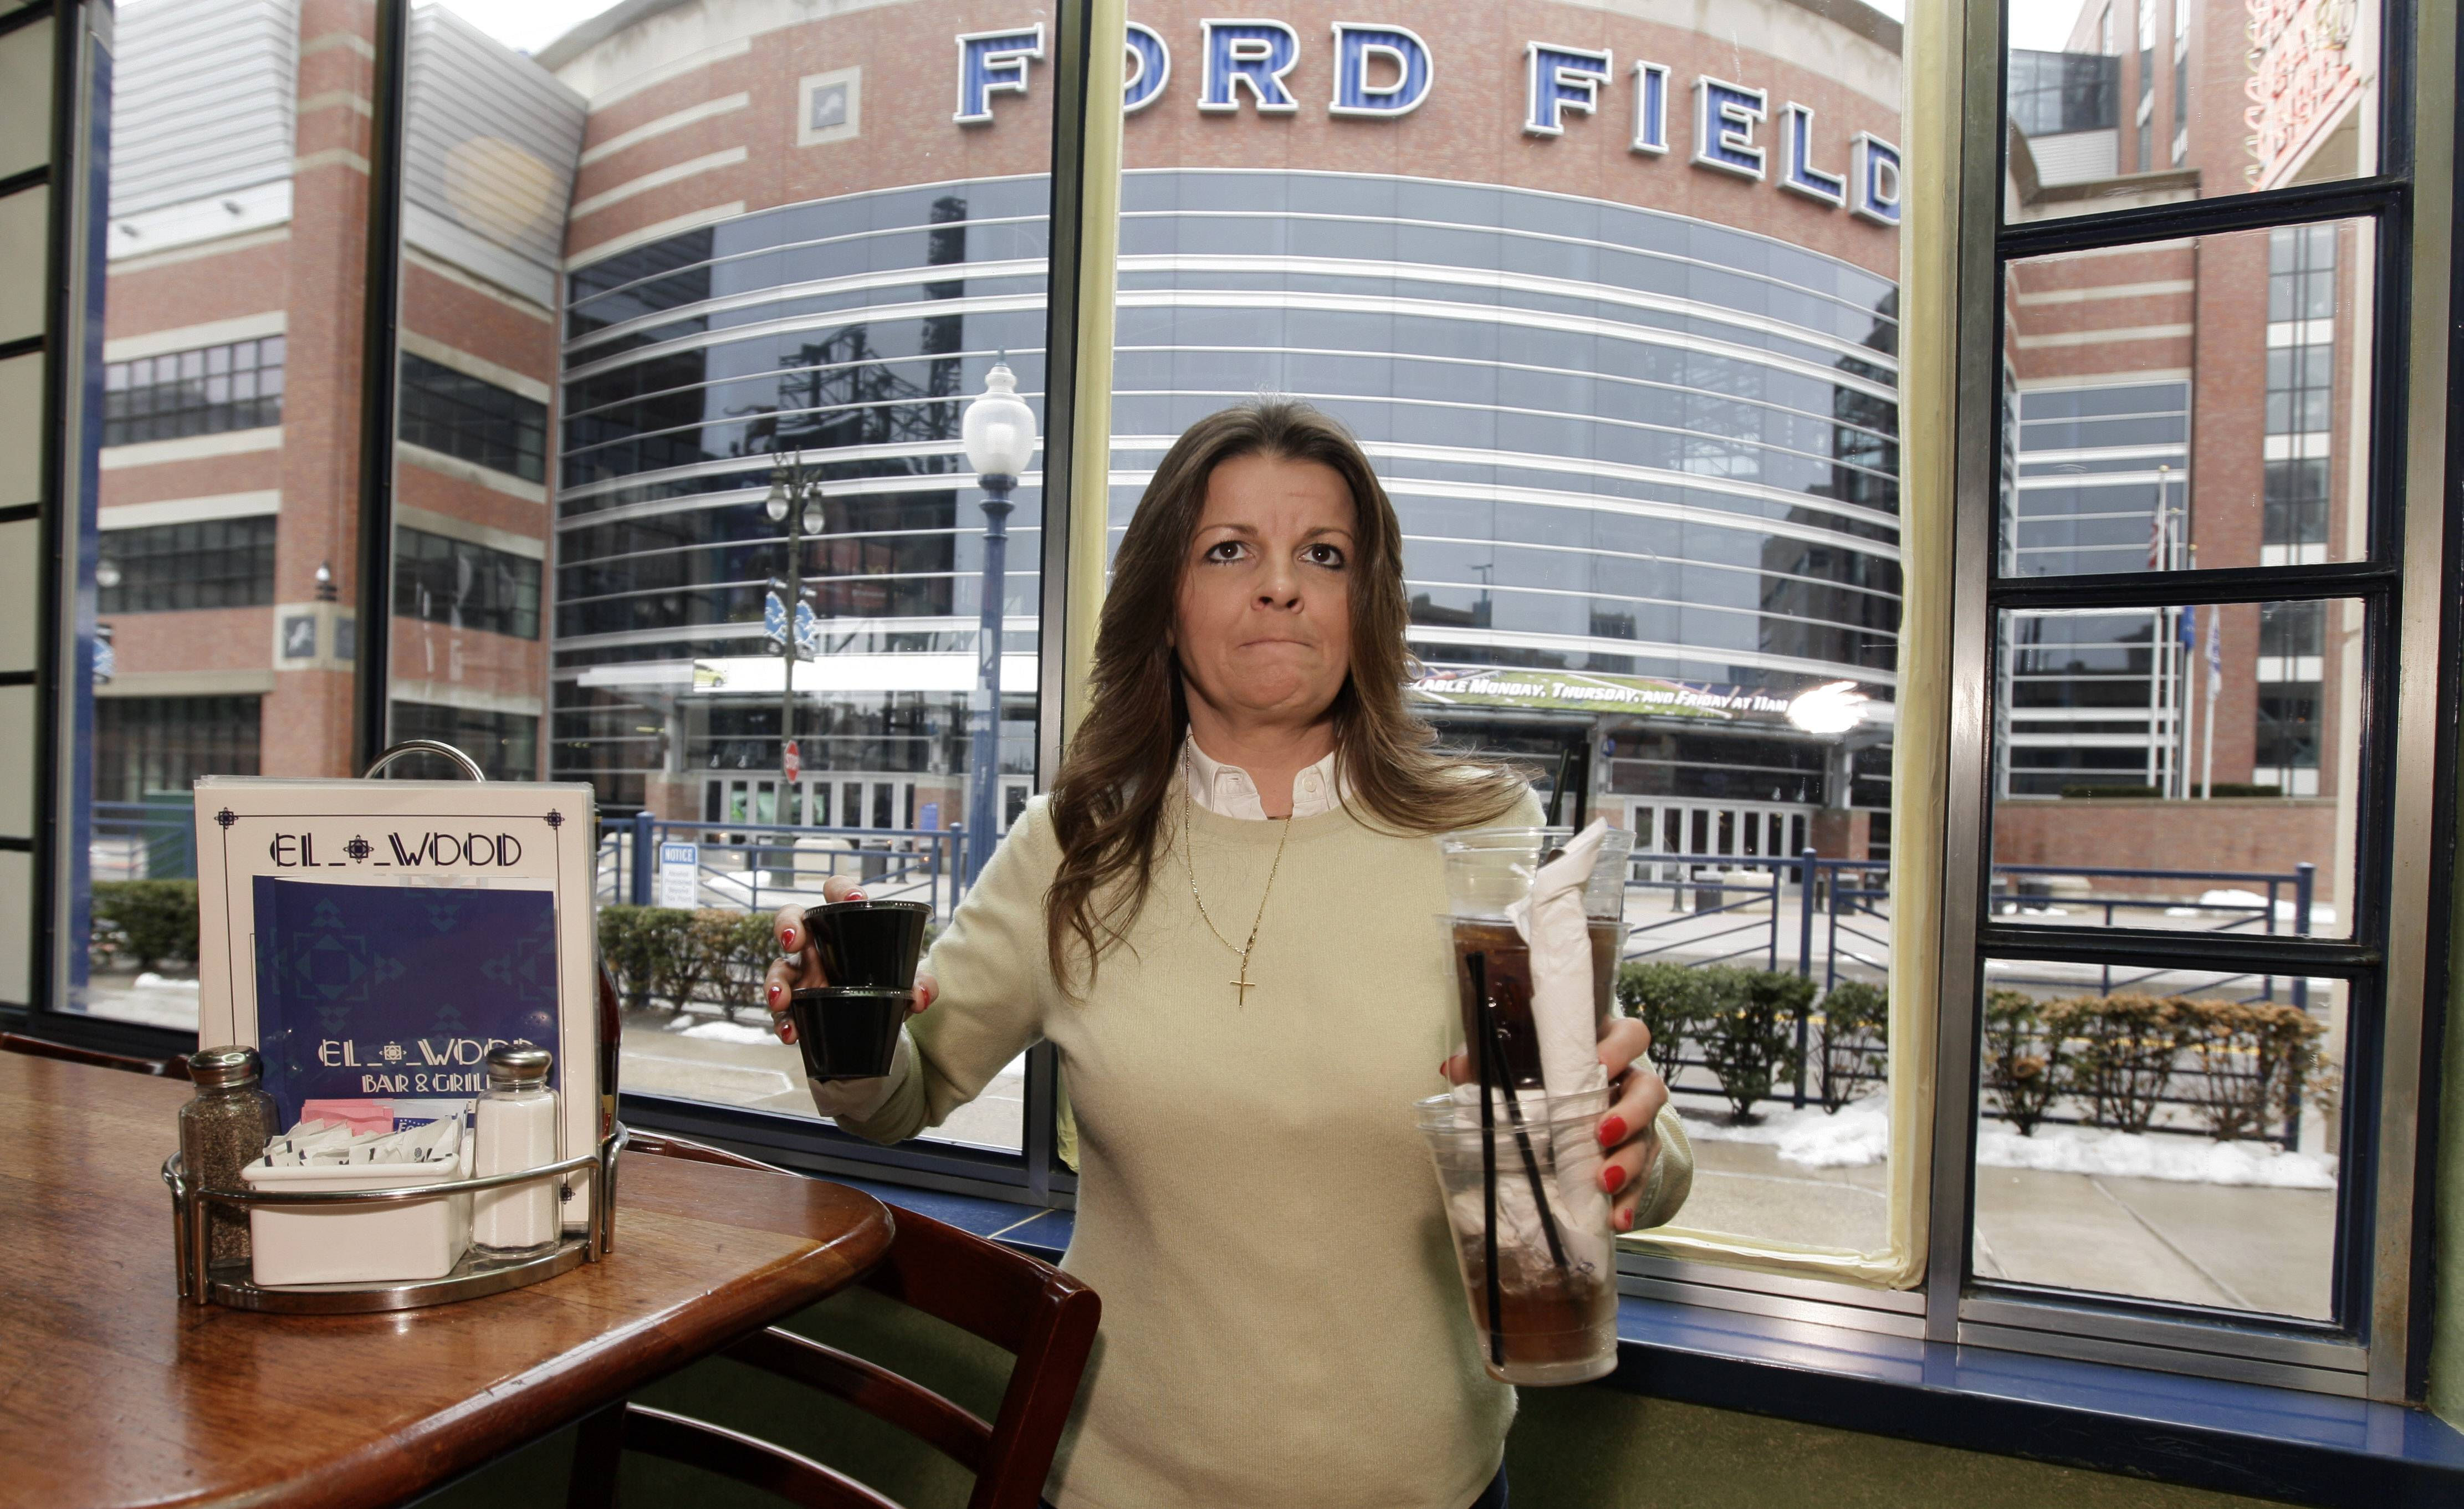 Elwood Bar & Grill manager Liz Markle clears a table with a view of Ford Field in Detroit, home to NFL football's Detroit Lions.